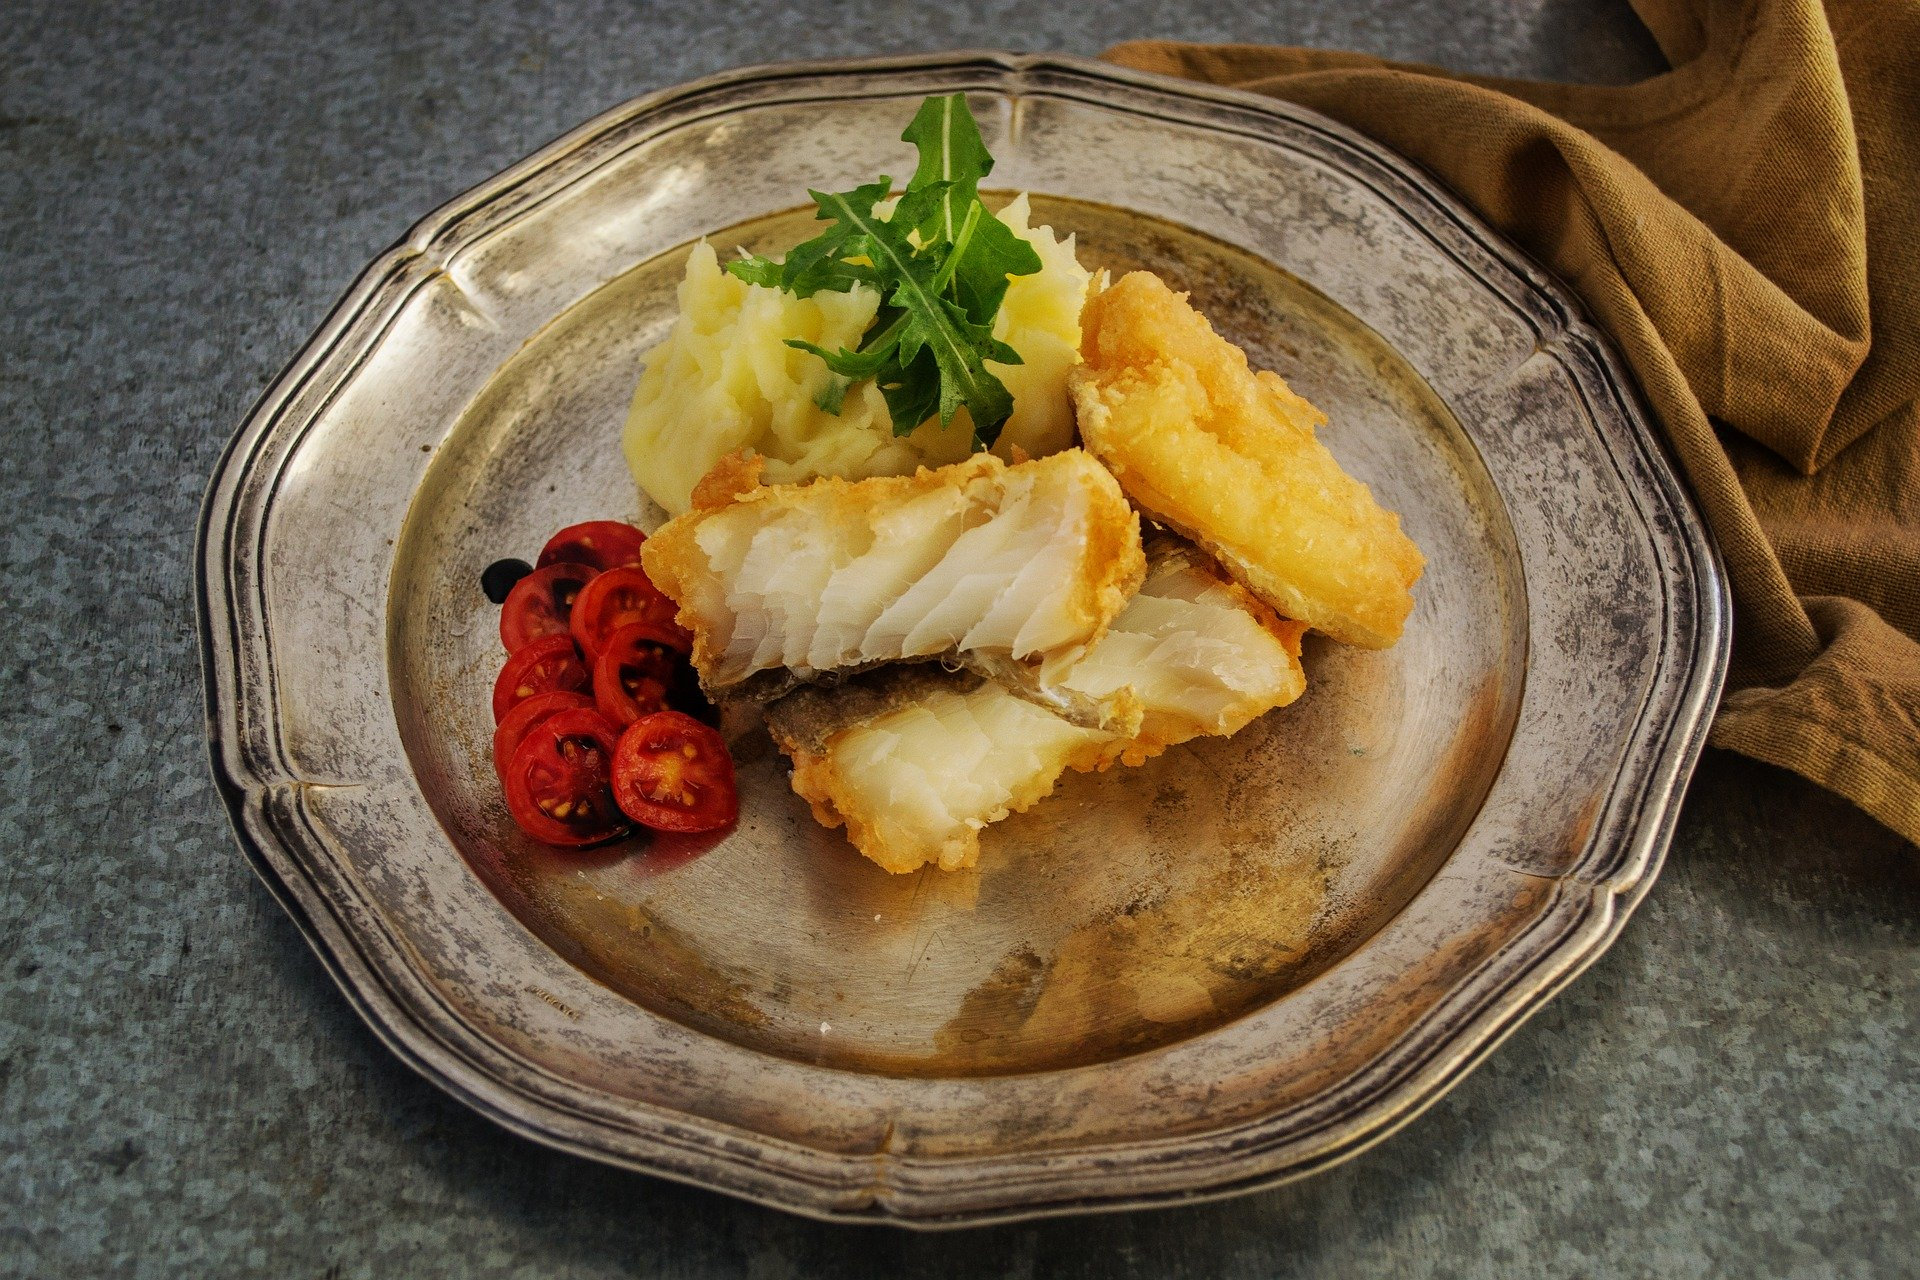 A closeup on a plate with codfish, potatoes and cherry tomatoes